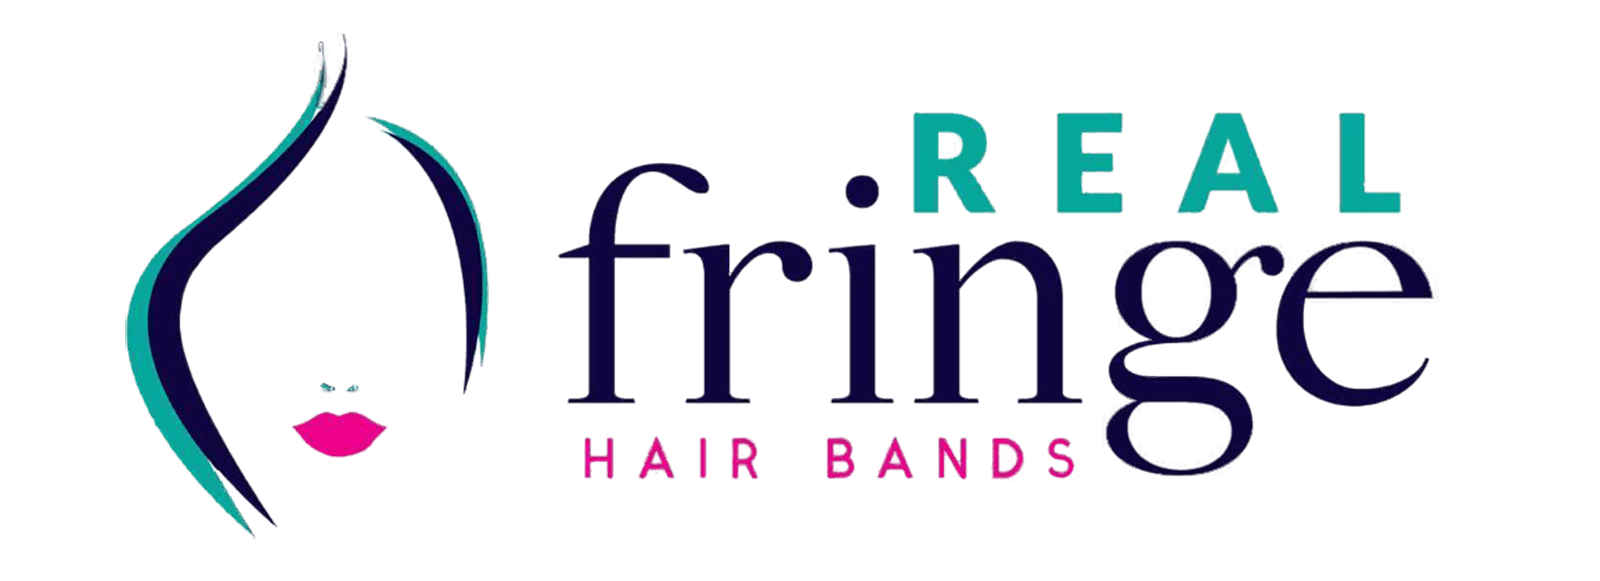 Real Fringe Hair Bands